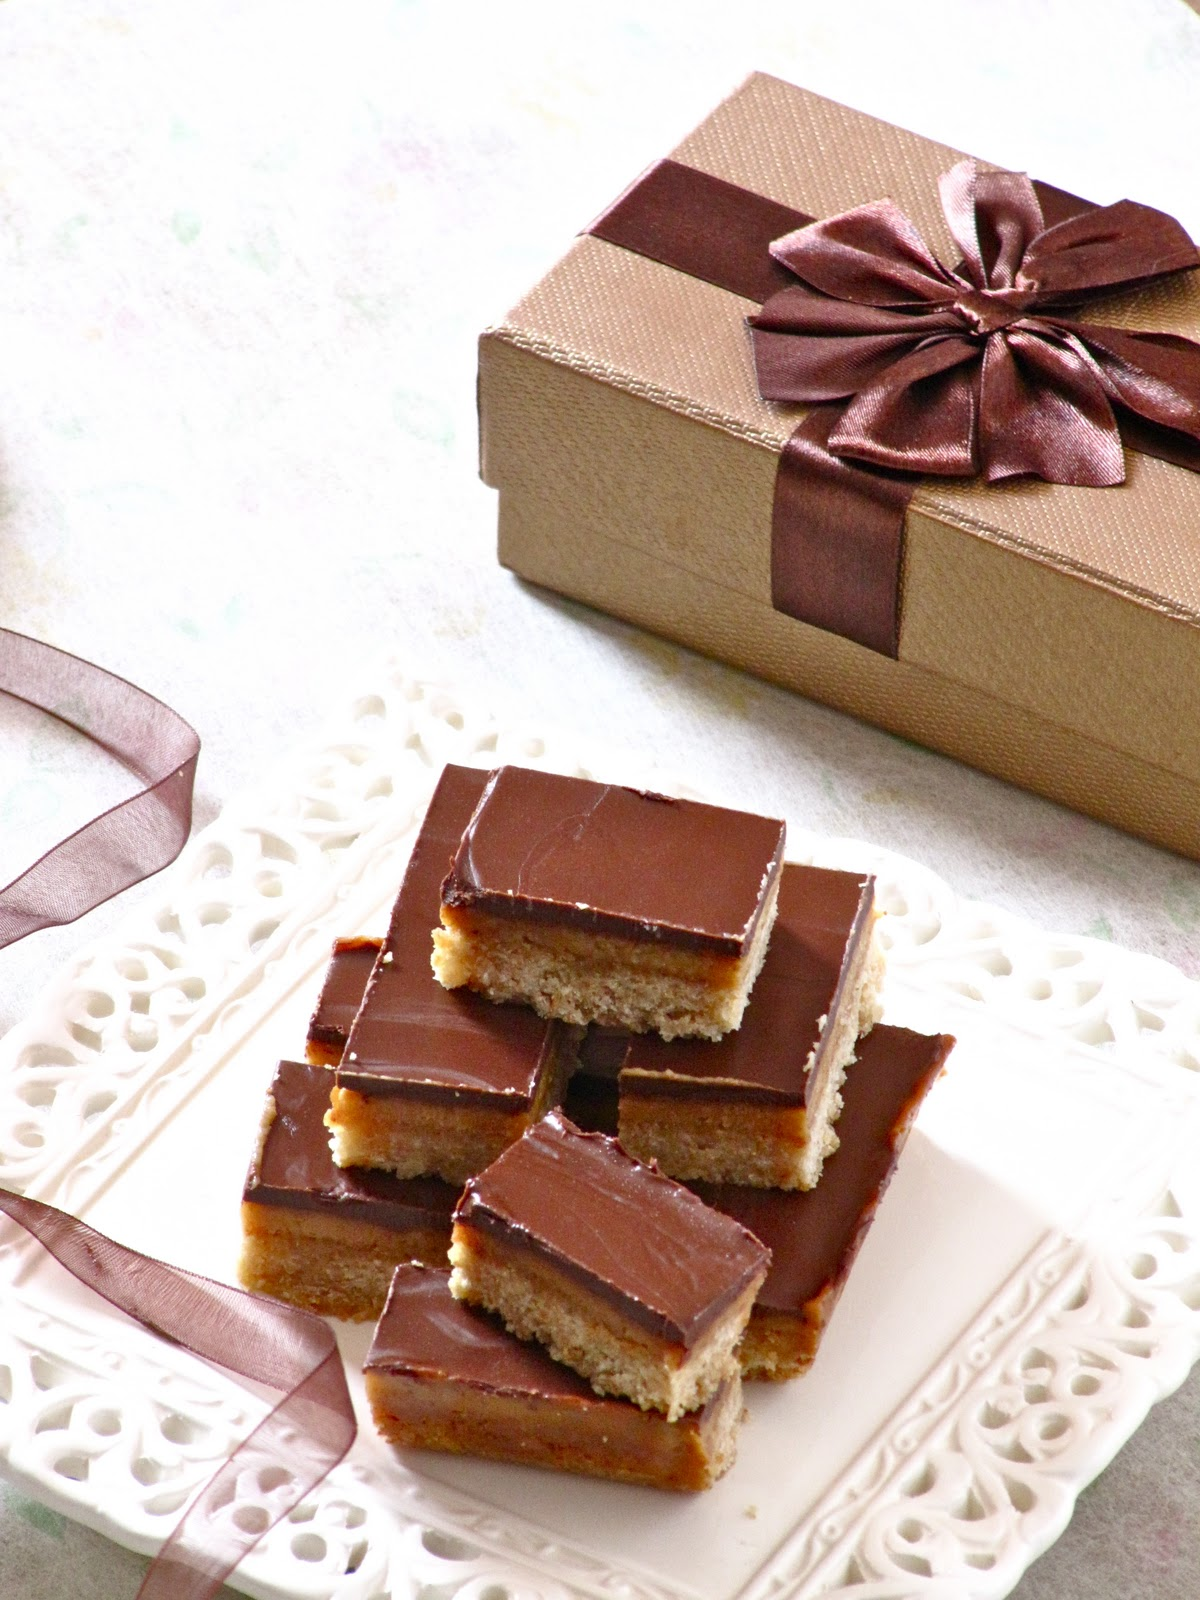 Plateful: Chocolate Caramel Slice — the perfect holiday treat